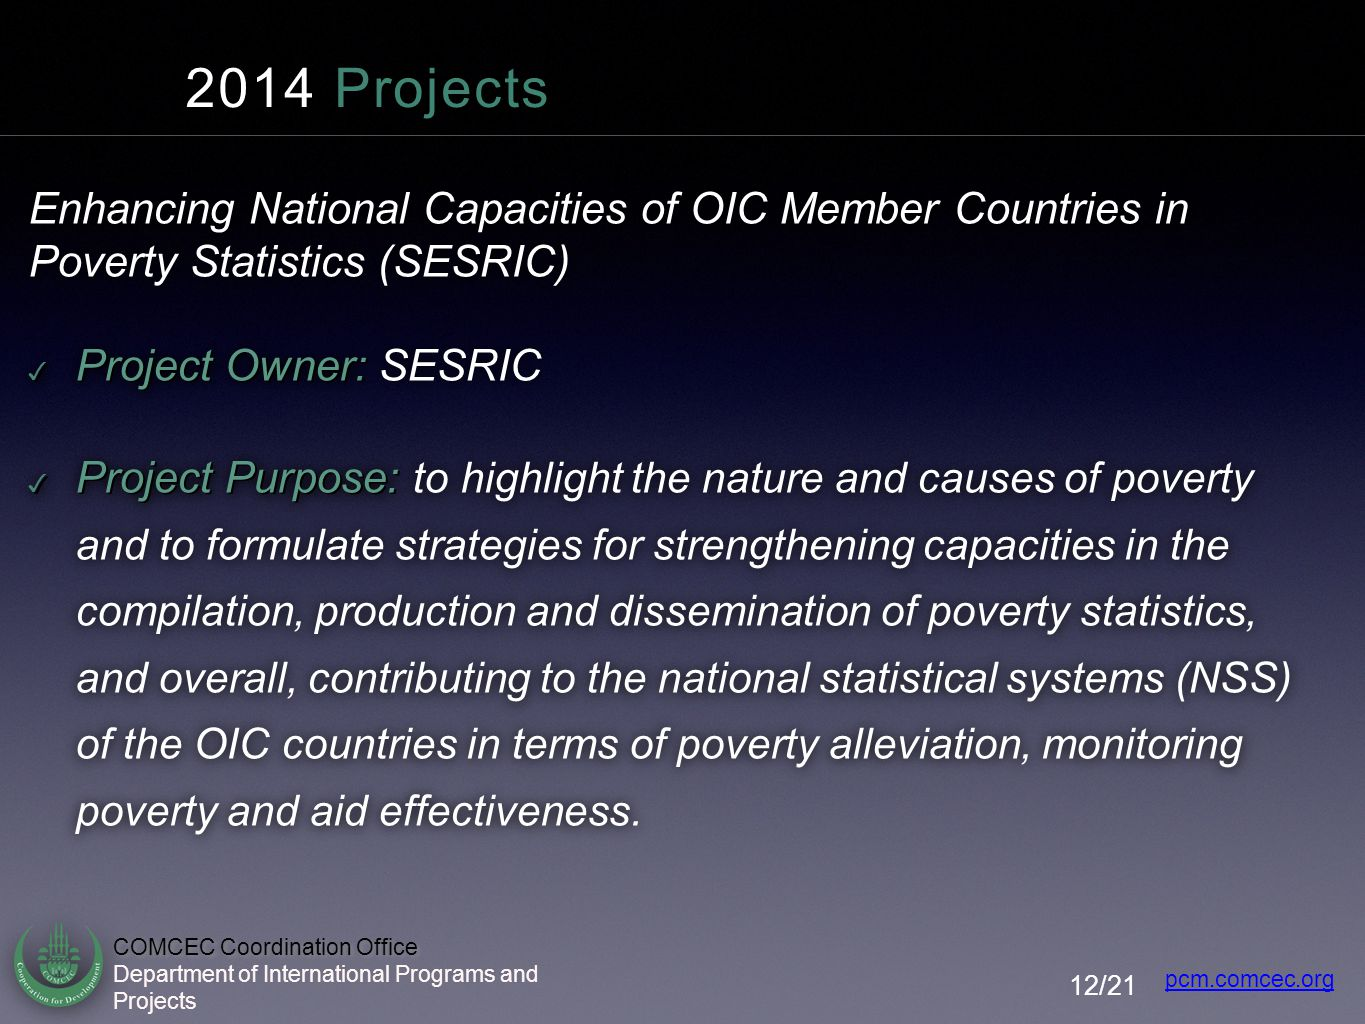 2014 Projects Enhancing National Capacities of OIC Member Countries in Poverty Statistics (SESRIC)